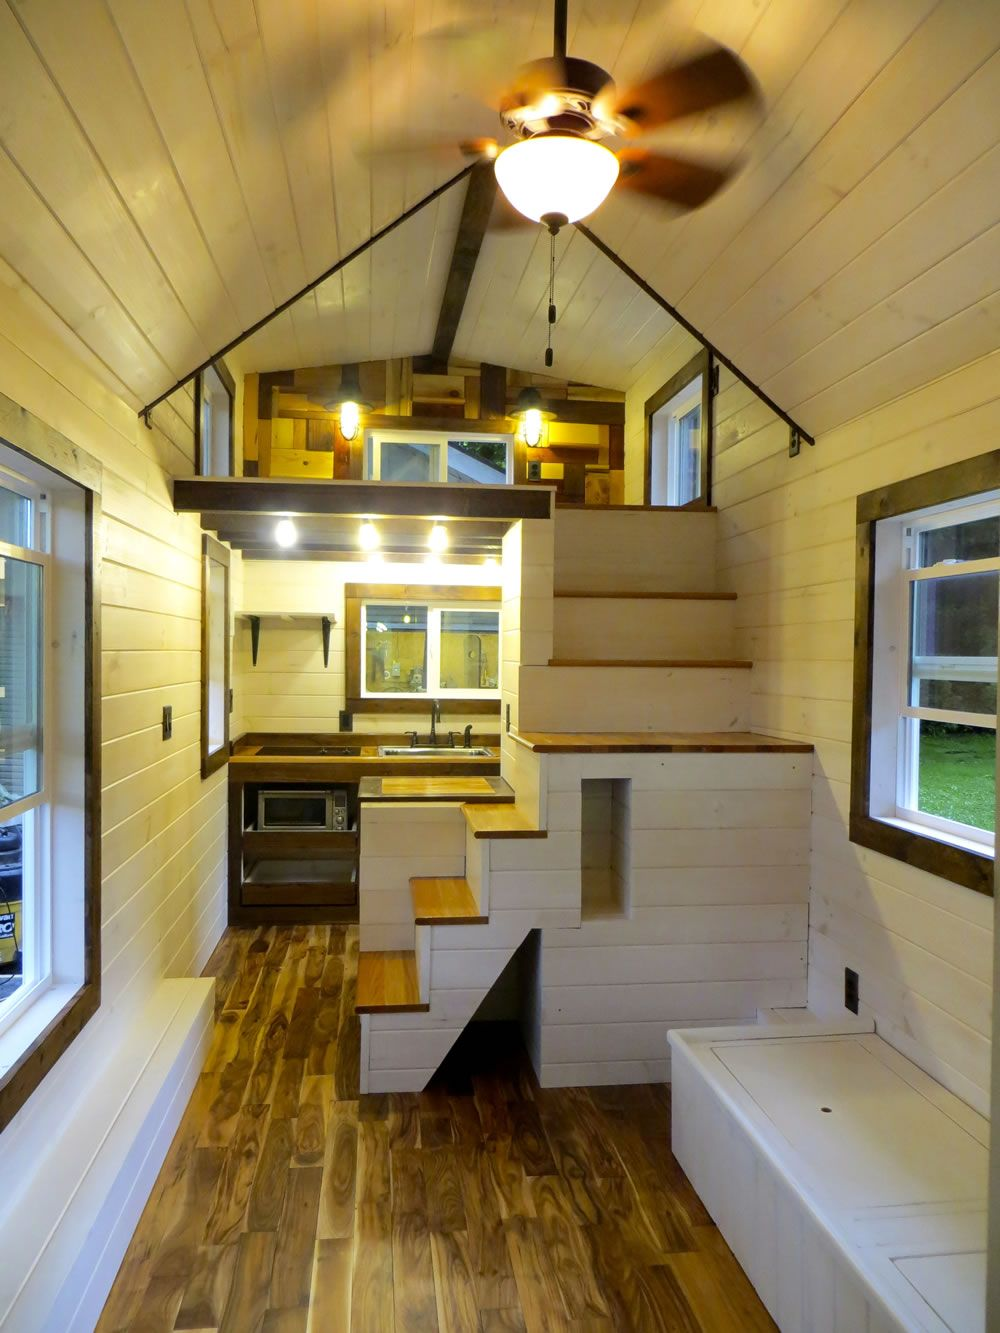 20 Cozy Tiny House Decor Ideas | Tiny house company, Tiny houses ...